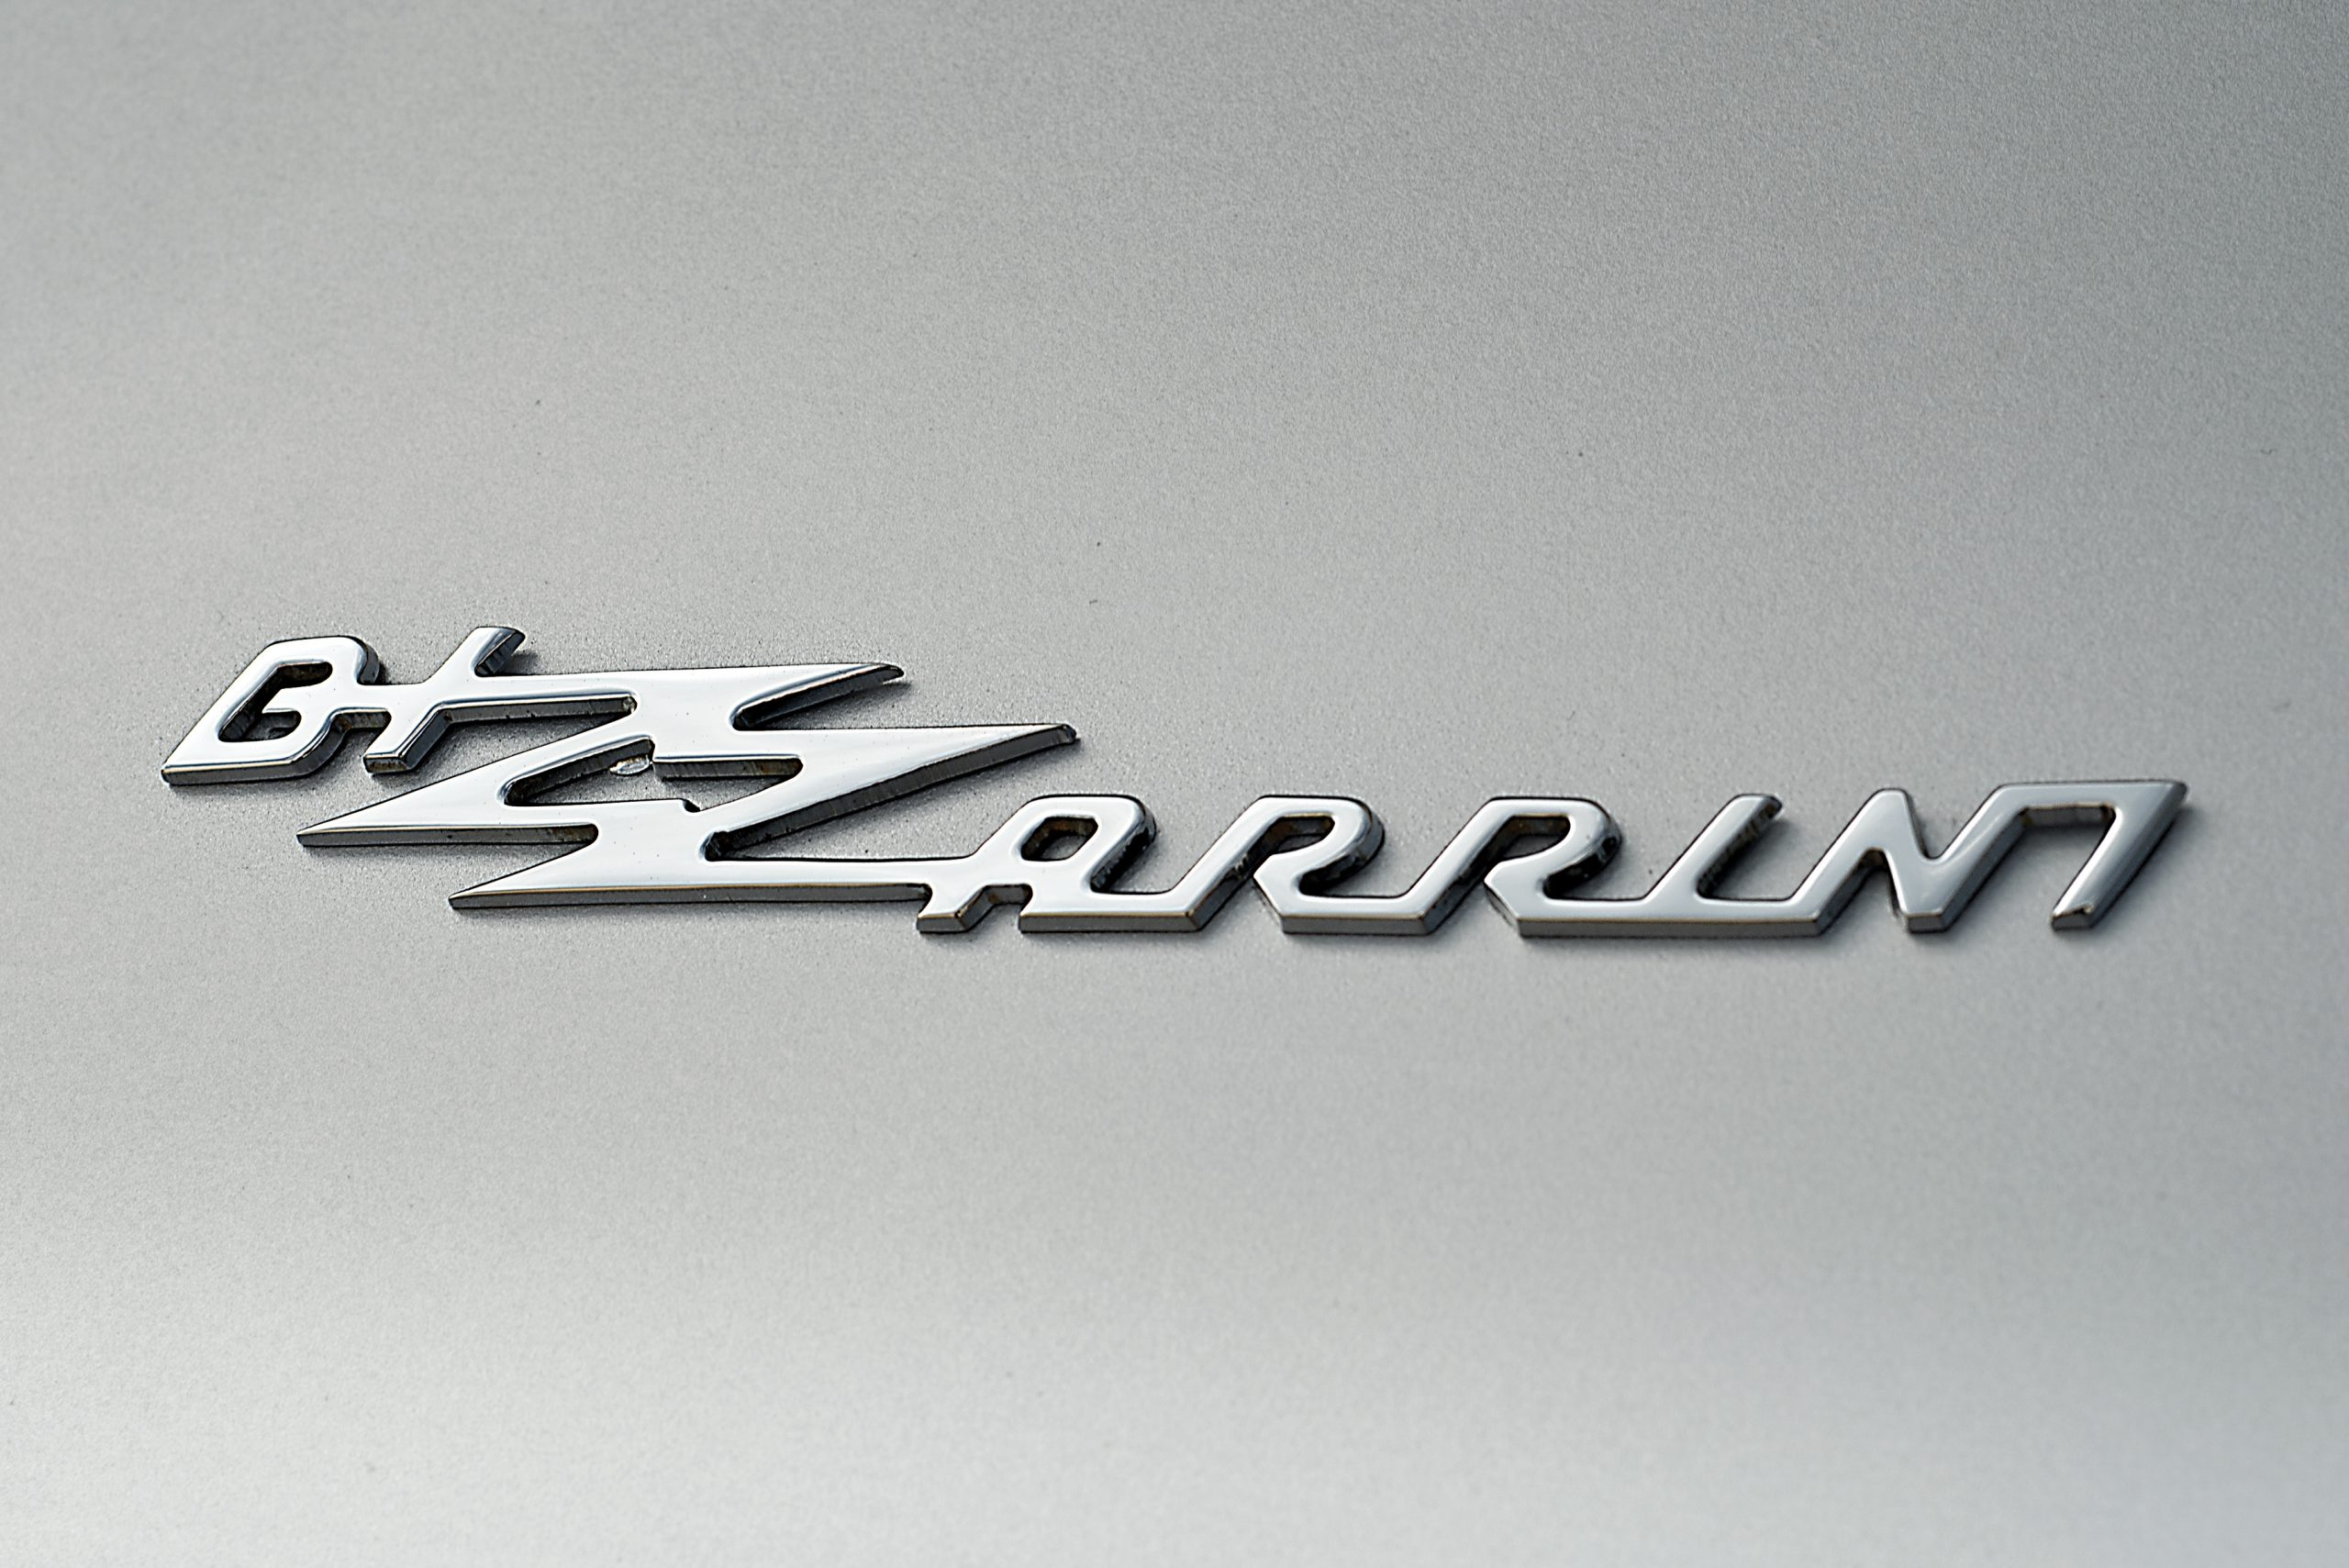 1965 Bizzarrini 5300 GT Strada Alloy rear three quarter logo